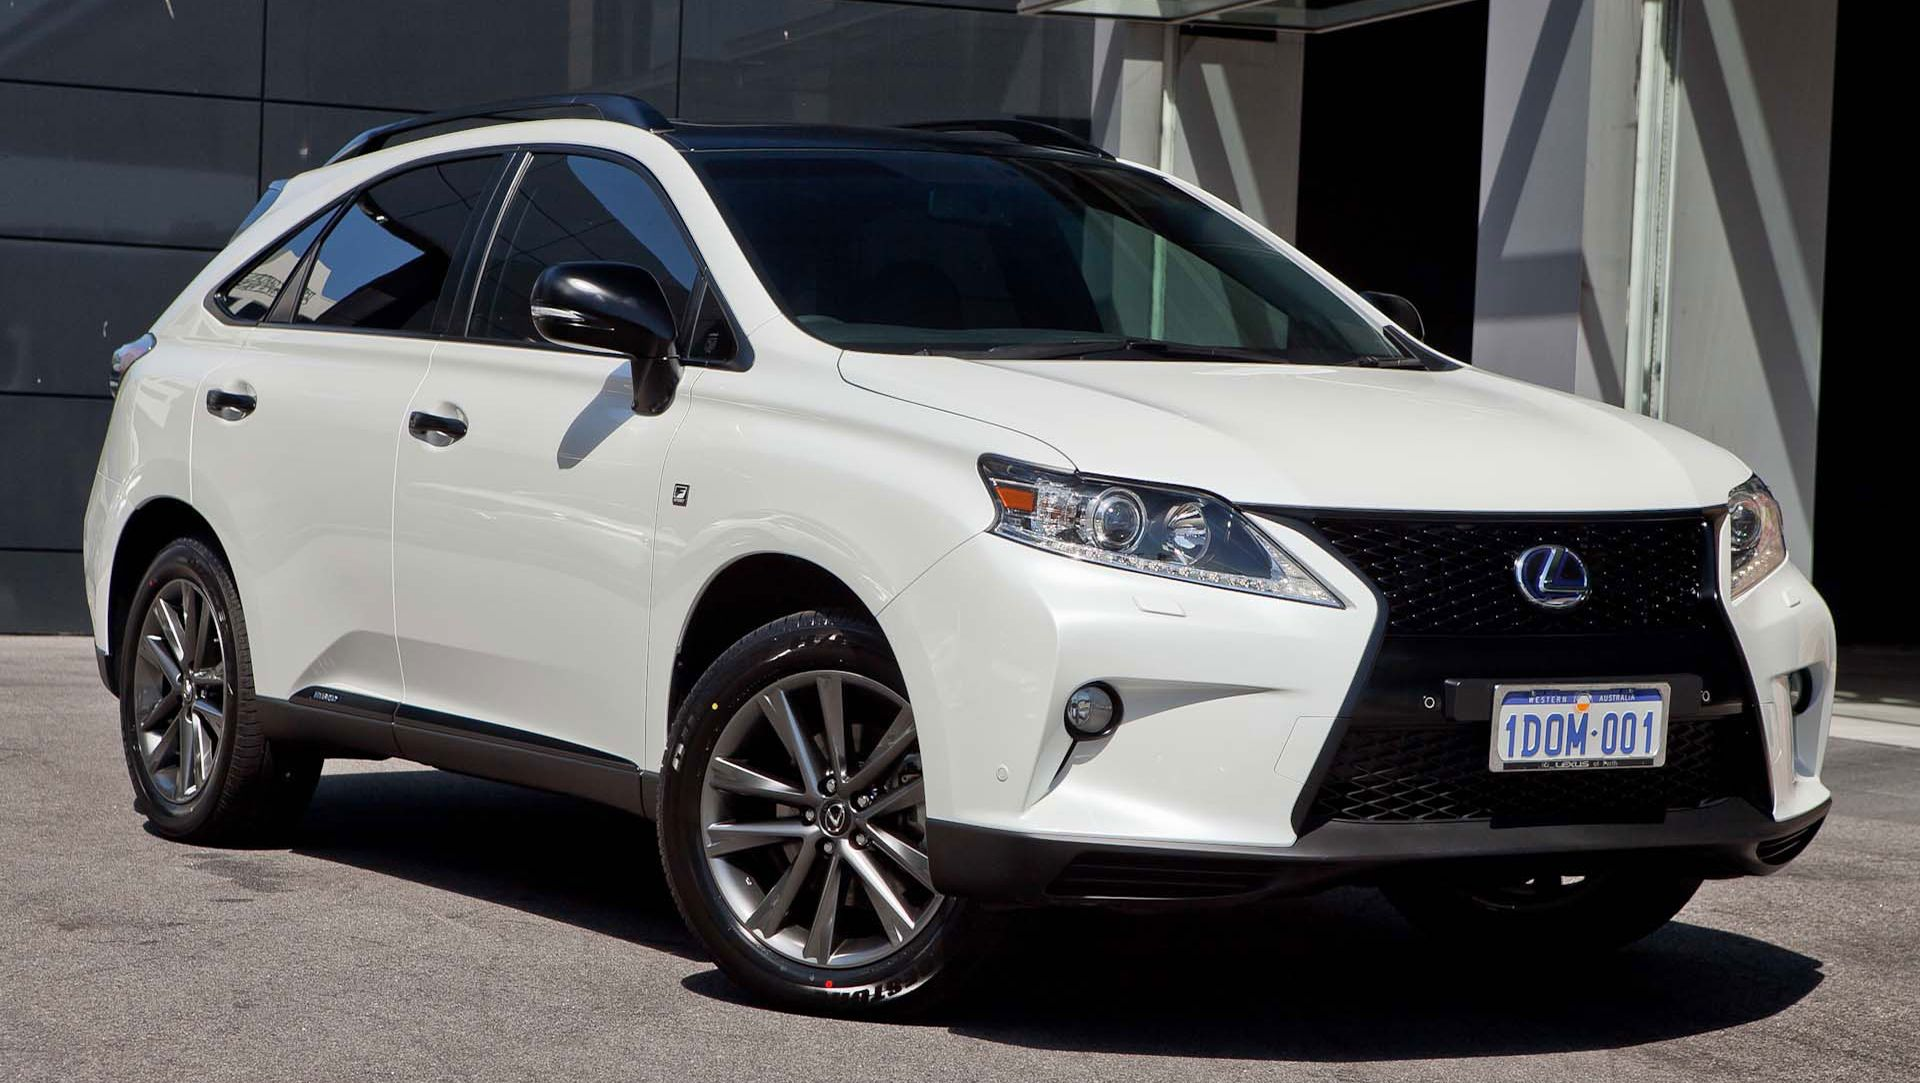 Photo Blacked Out Lexus Rx 450h F Sport With Images Lexus